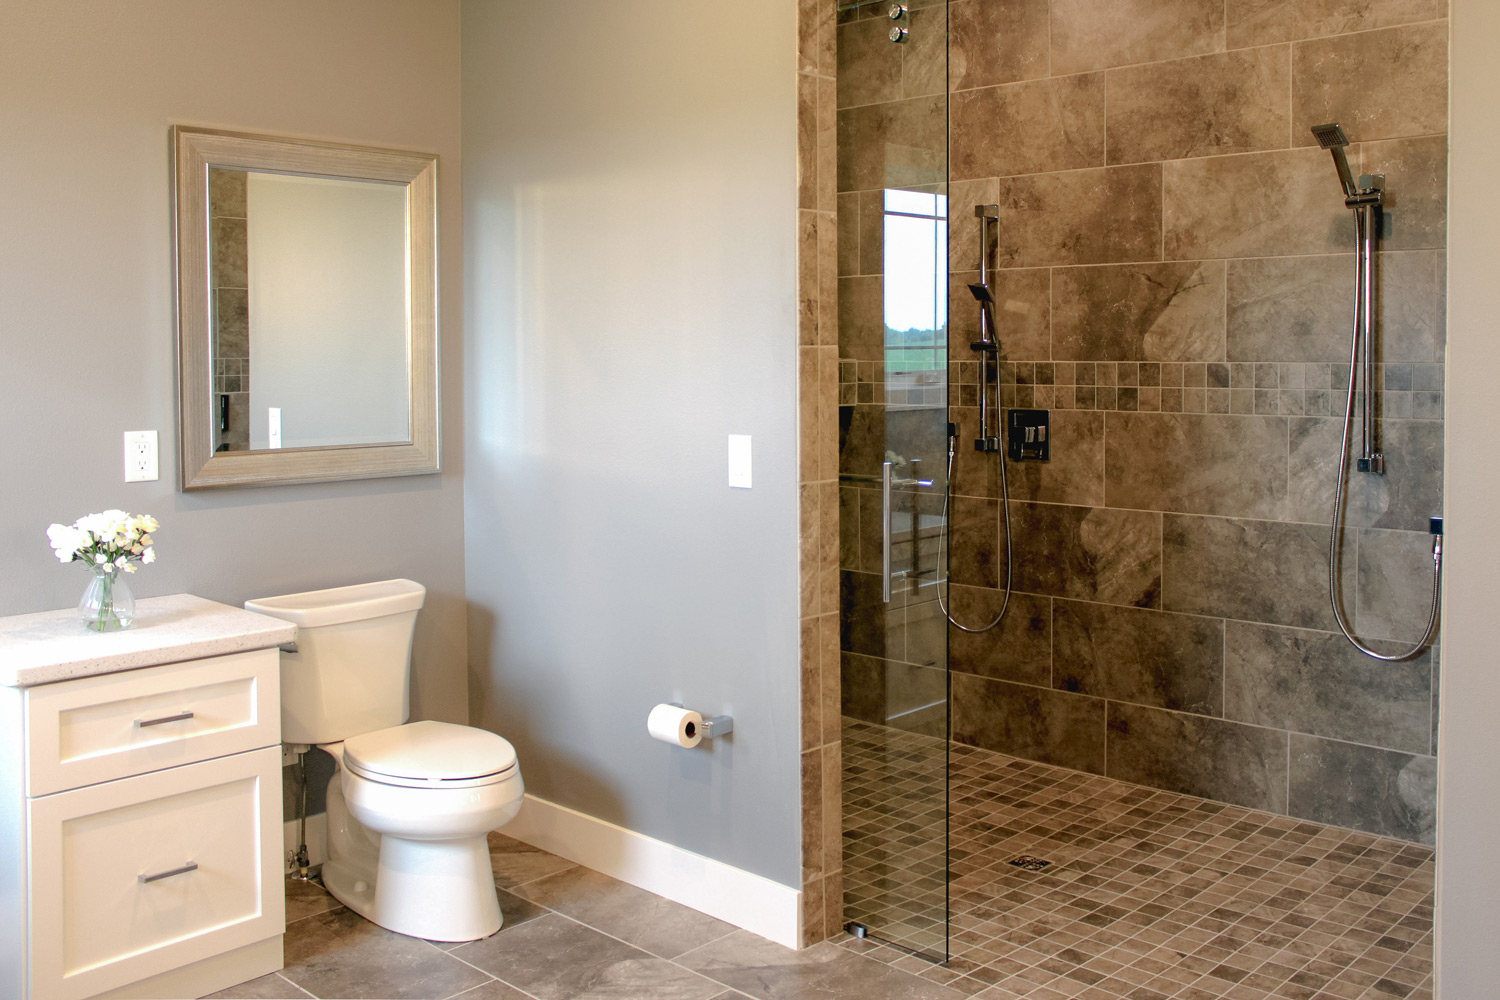 Choosing a Bathroom Toilet When Remodeling